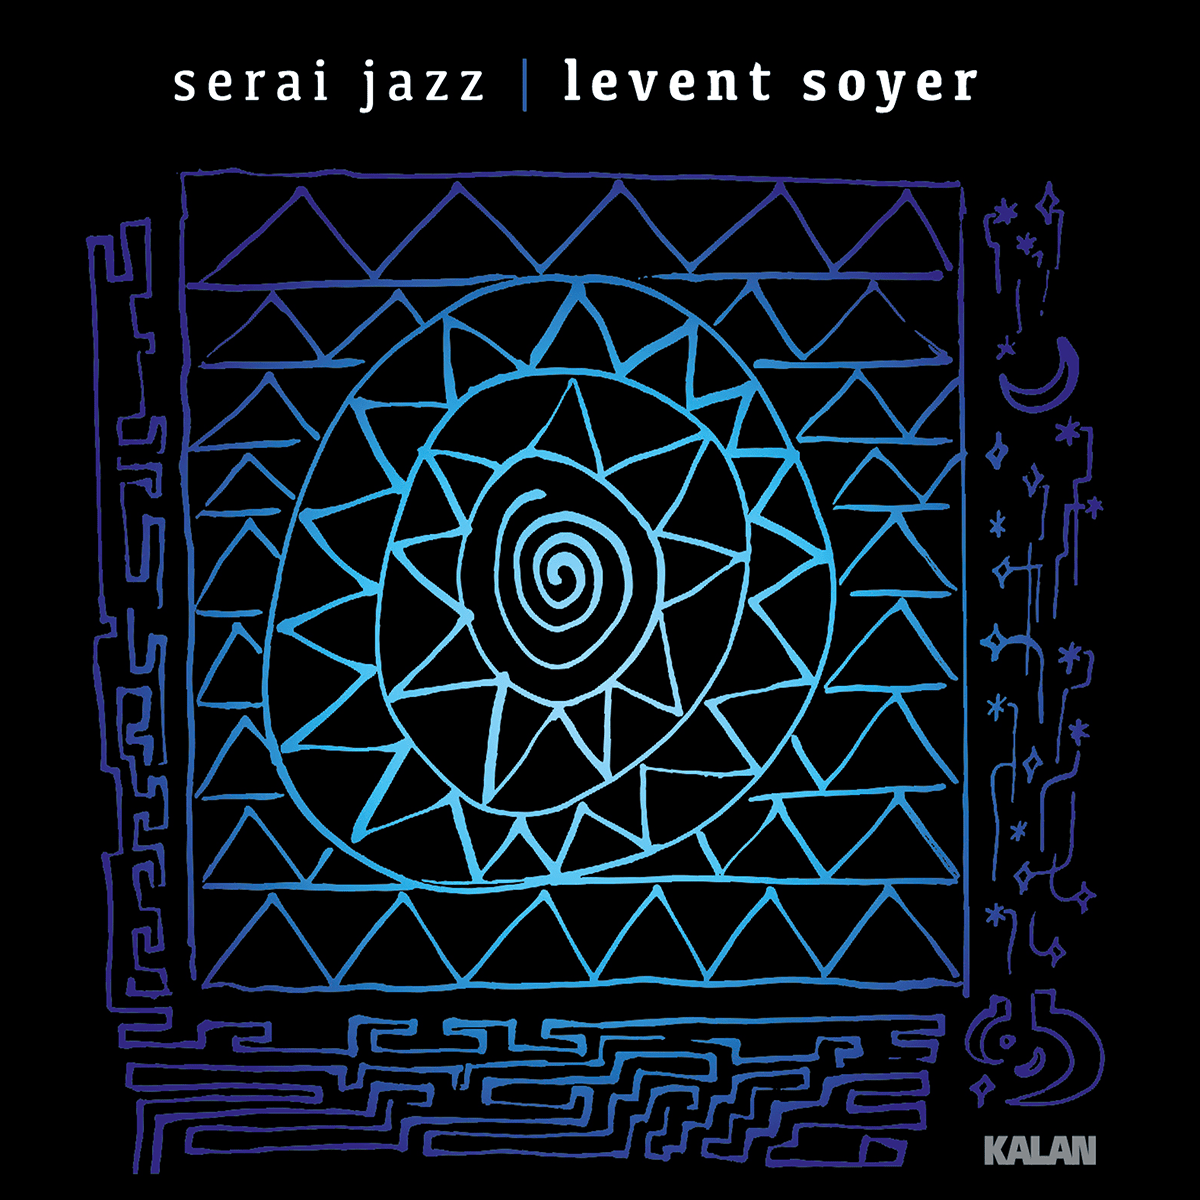 Levent Soyer Serai Jazz